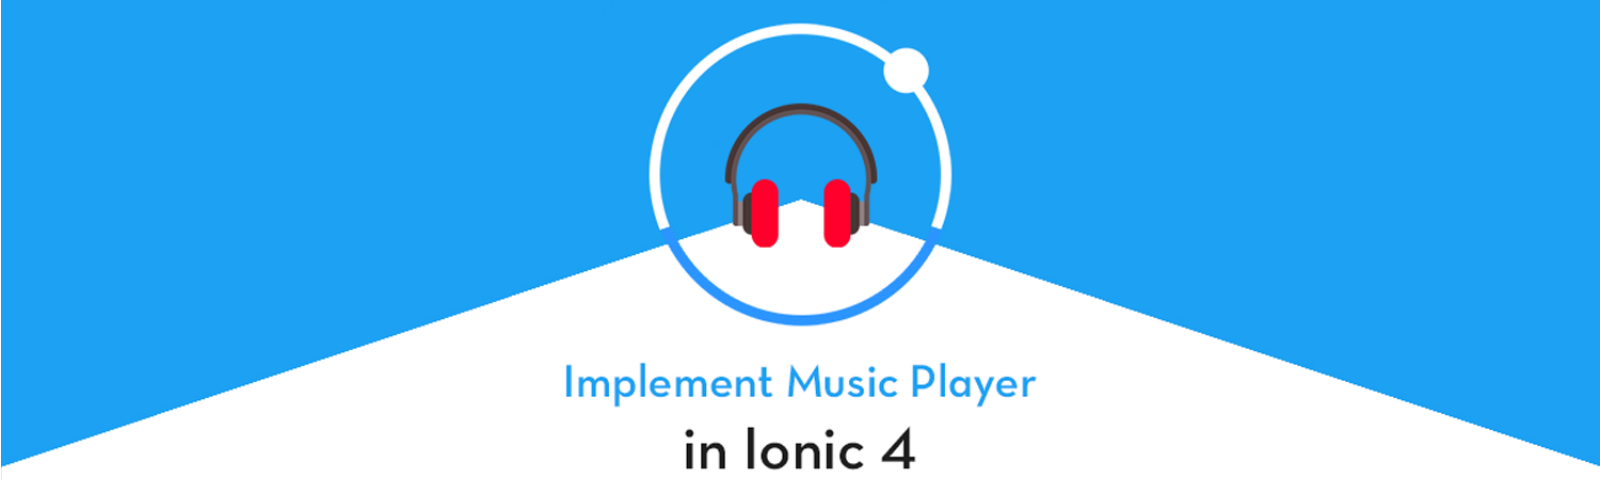 Play Music in Ionic Capacitor apps